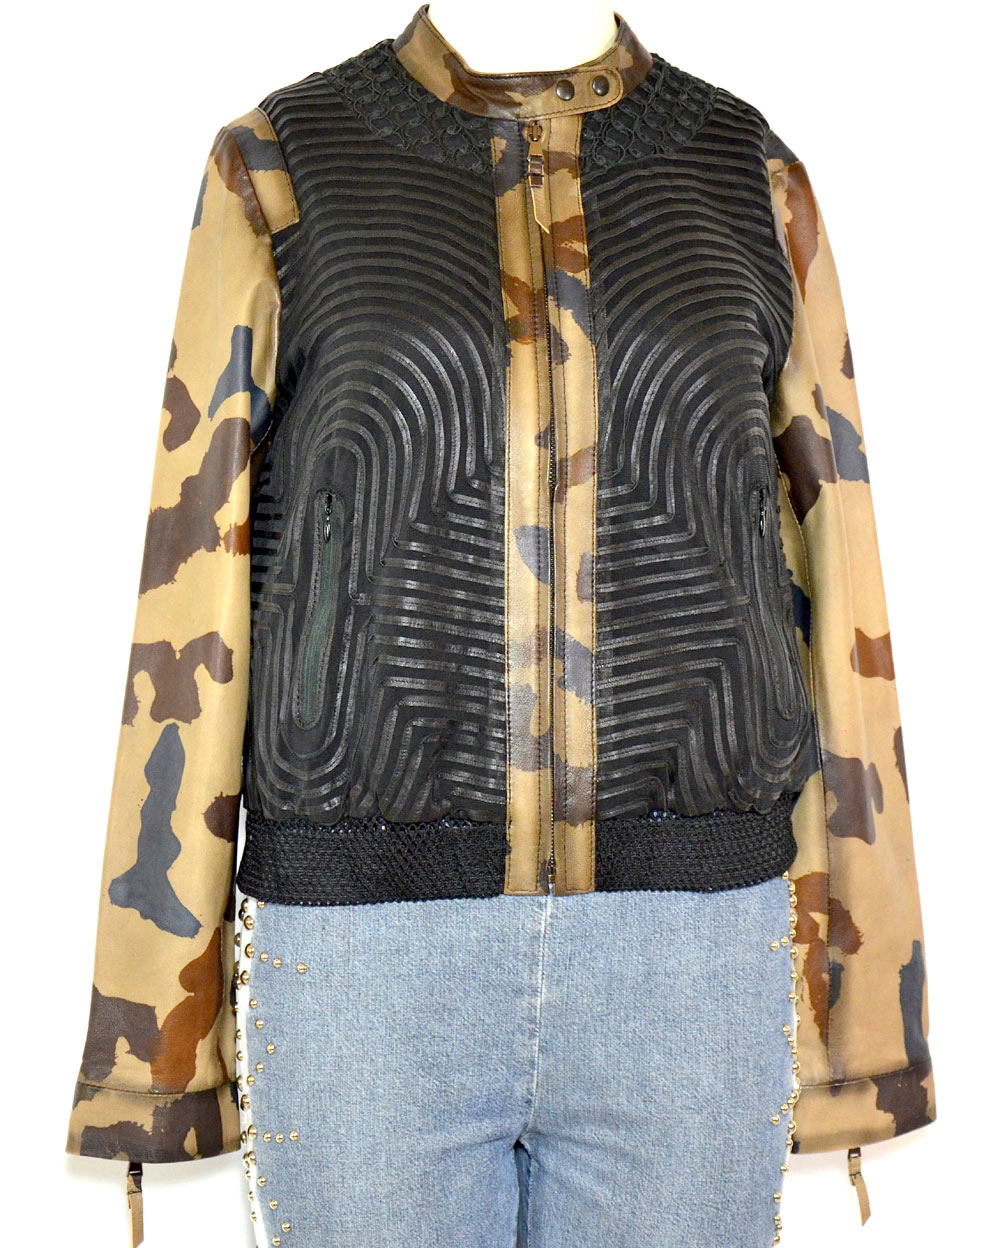 Leather Couture Und By Lederjacke Stoff Stretch Luxury Andrea Nicolotti D2HeWE9IY